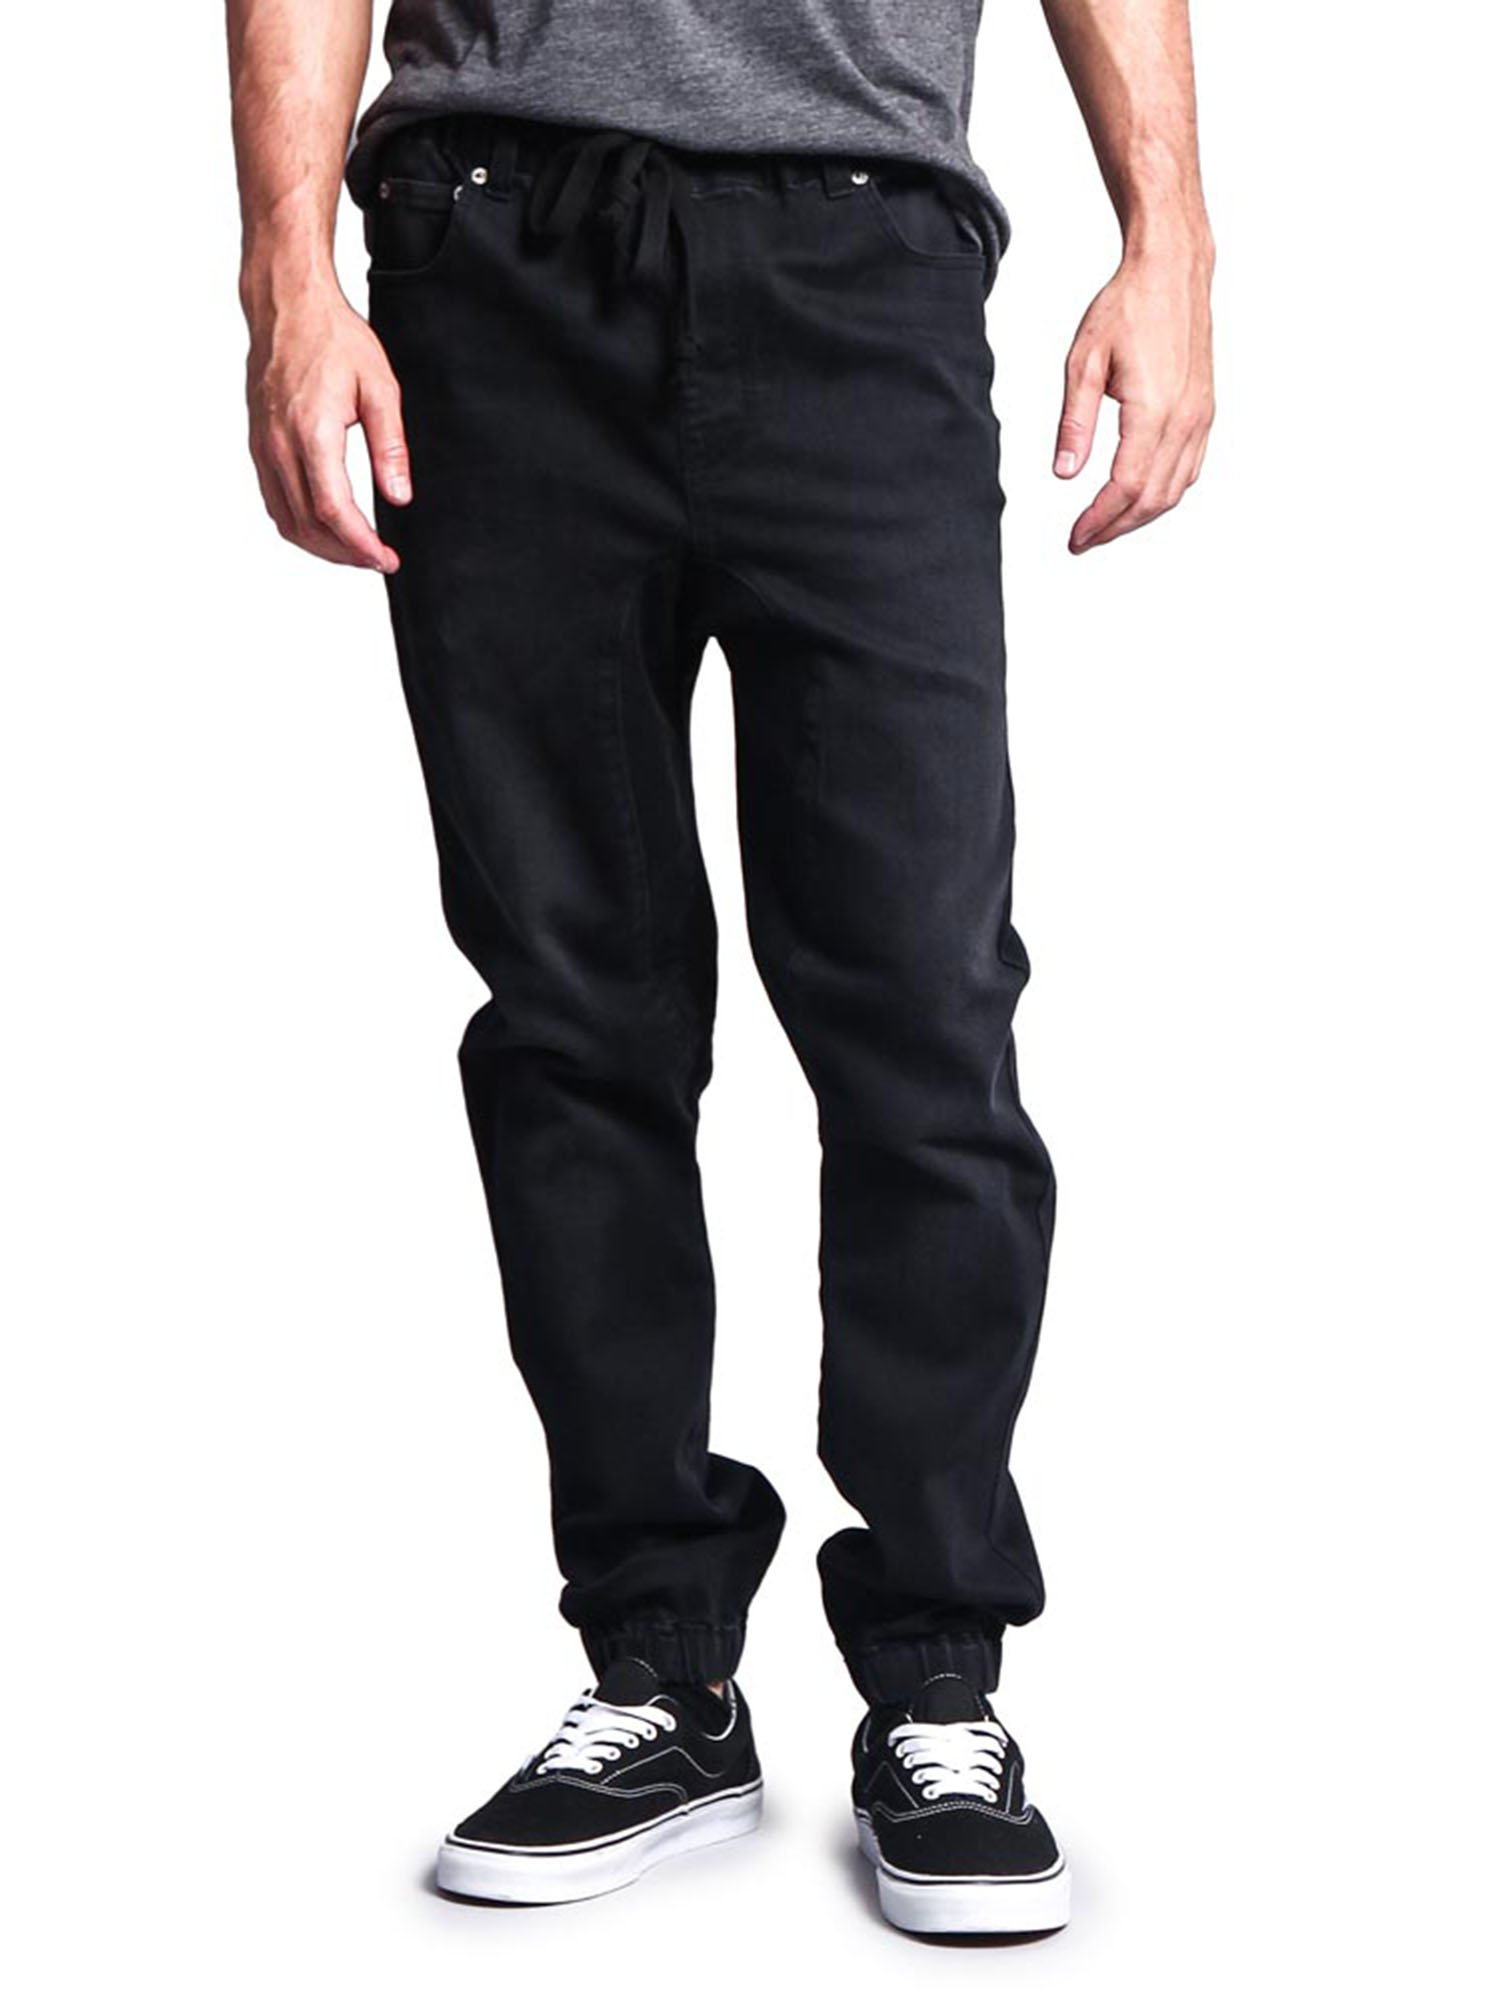 Victorious Mens Drop Crotch Jogger Denim Pants JG803 - ACID BLACK - 2X-Large